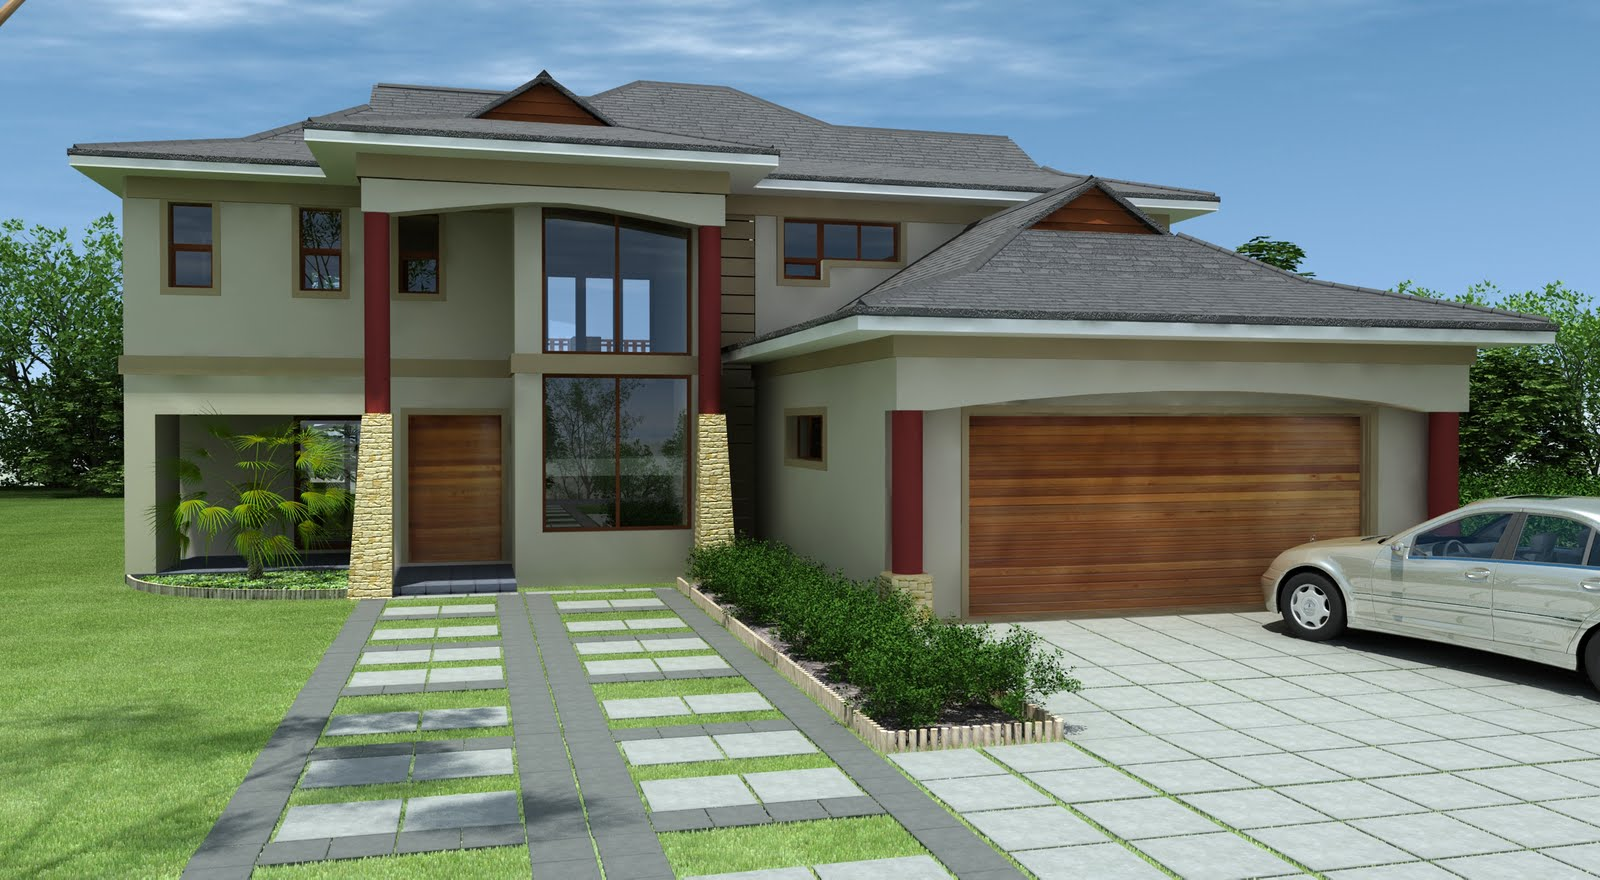 House plans designs in south africa home design and style